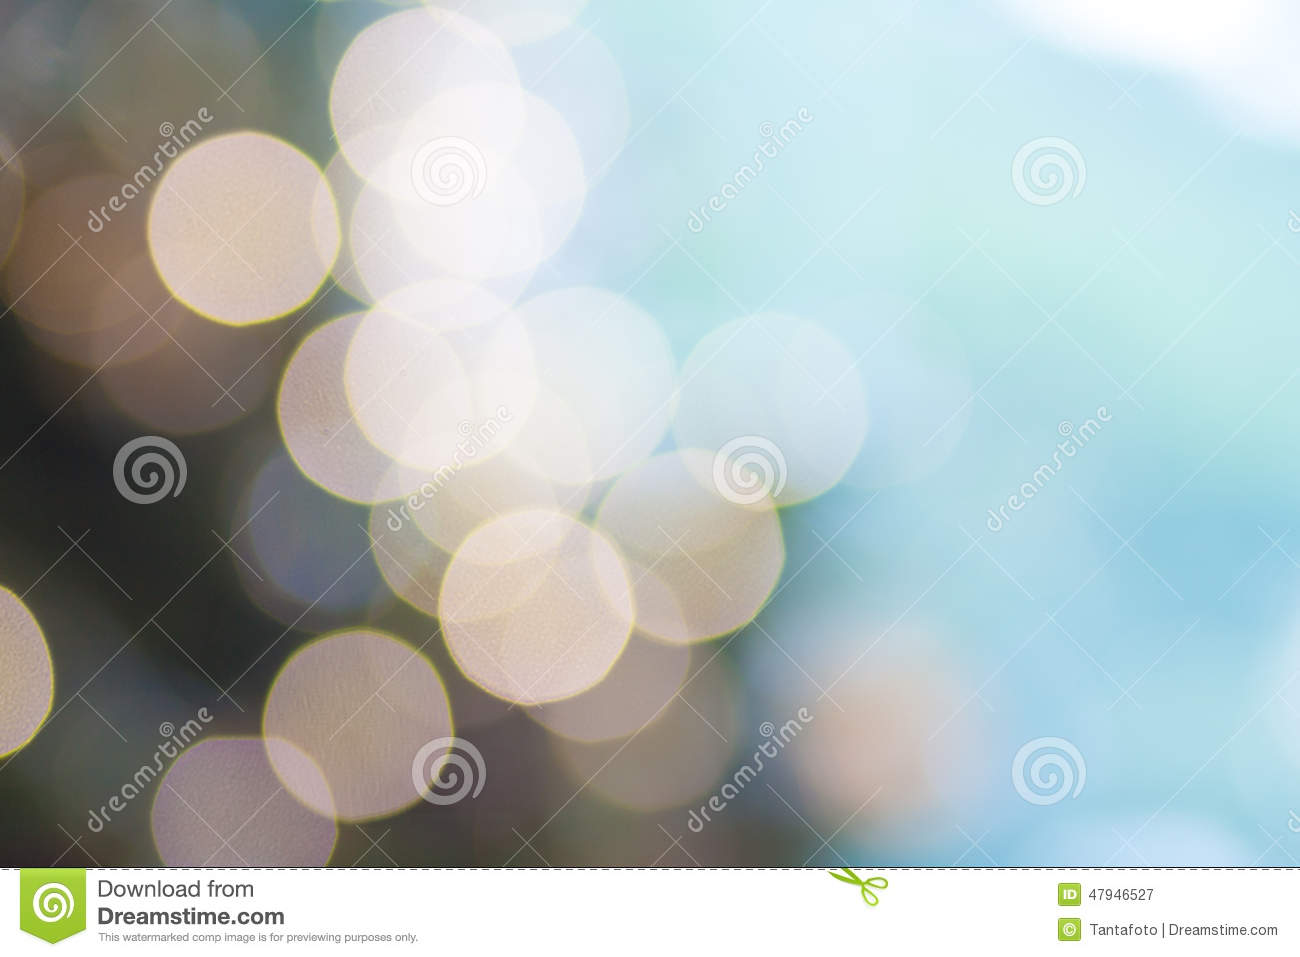 Glitter light background abstract